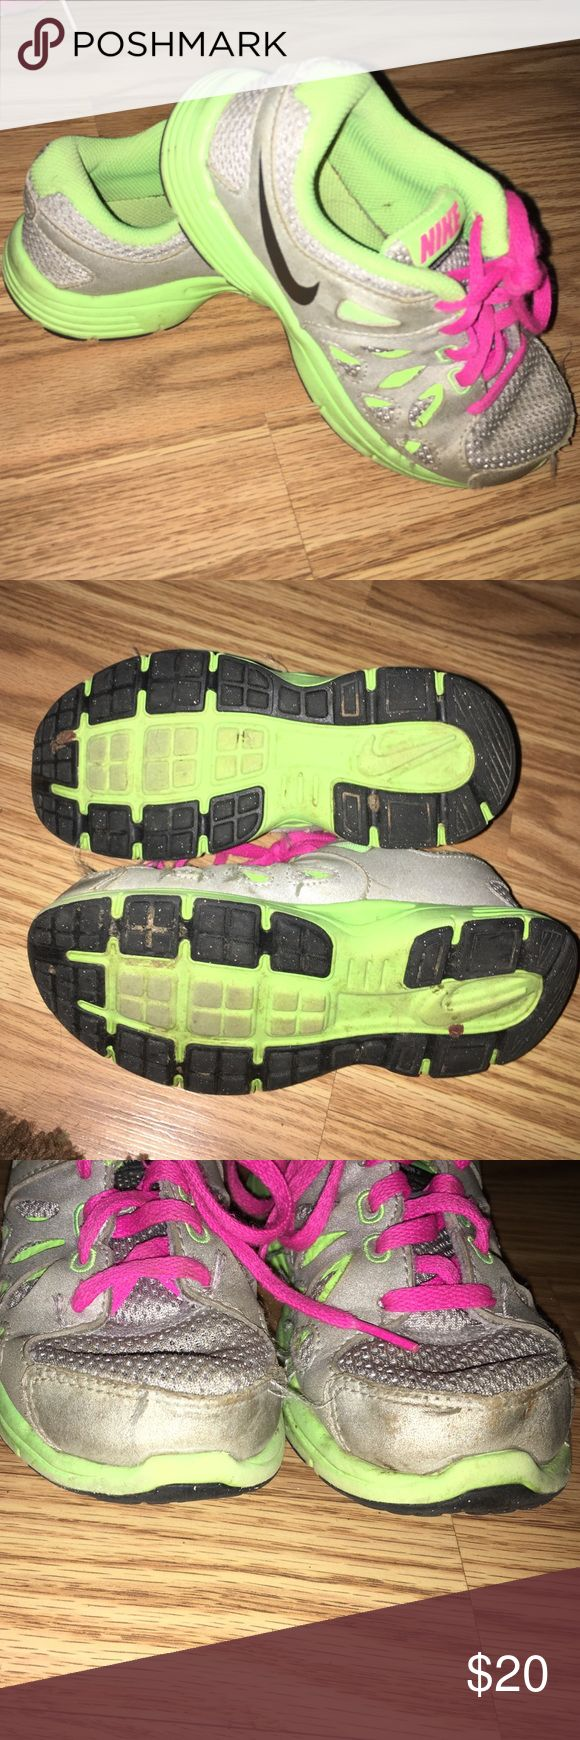 Nike girls tennis shoes Gently worn. Some wear on toes. Many more miles left on these! Nike Shoes Sneakers